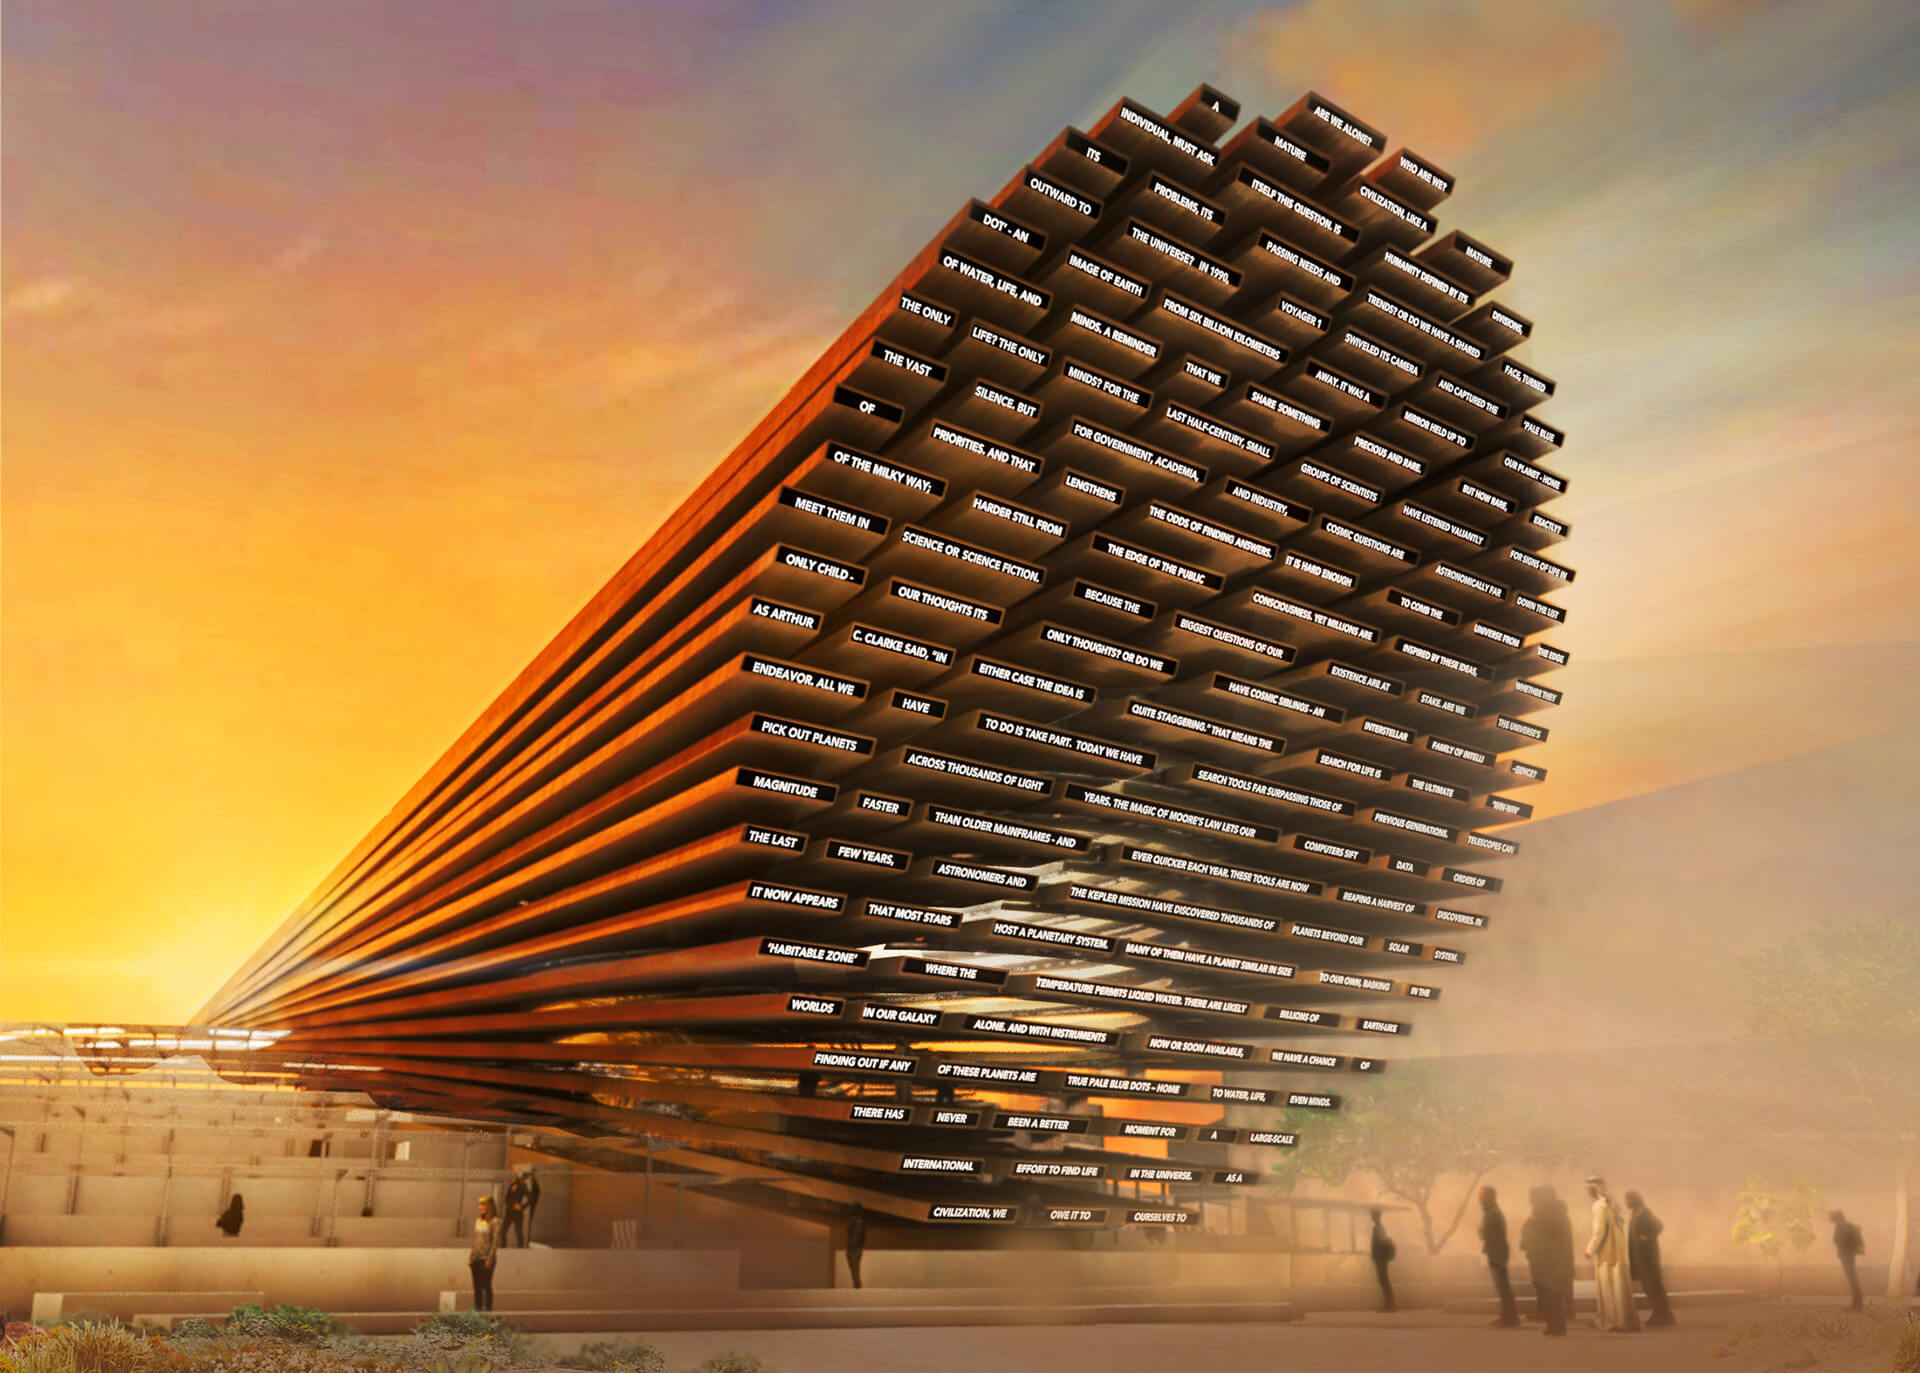 The UK Pavilion designed by Es Devlin Studio, Avantgarde and Veretec in the Opportunity district | Expo 2020 Dubai | Es Devlin Studio, Avantgarde and Veretec | STIRworld